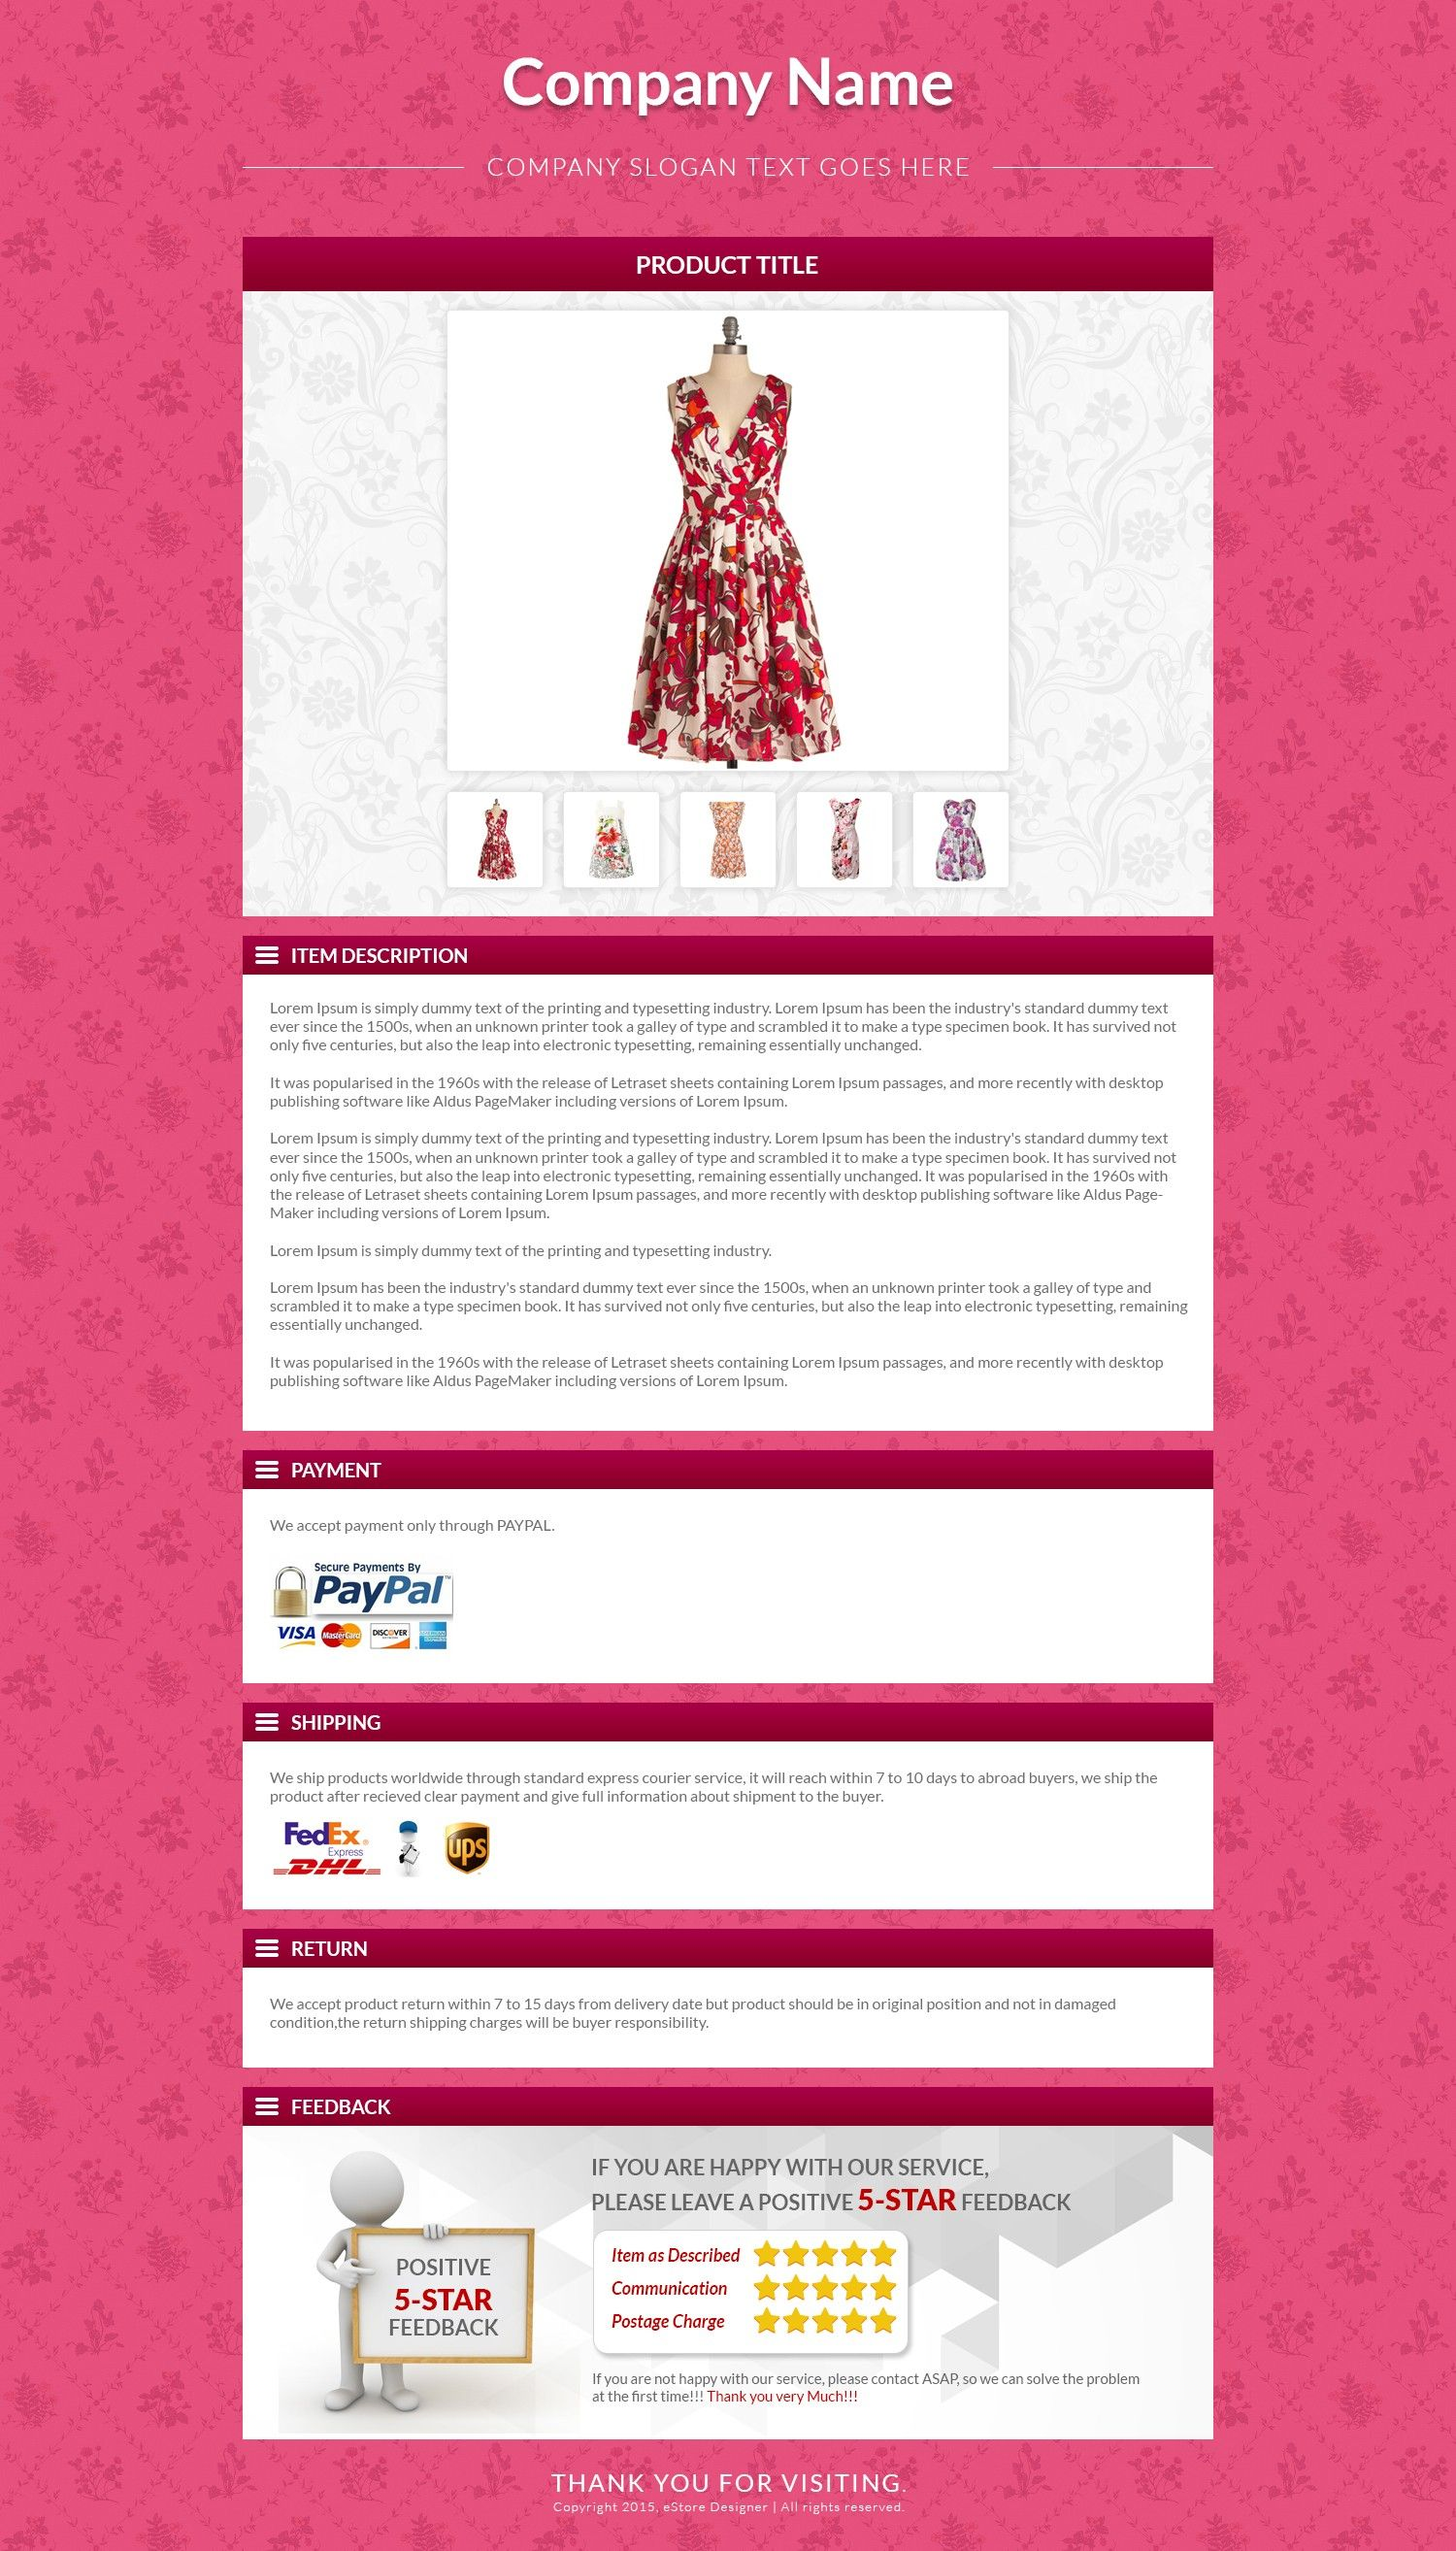 Pink Theme Ebay Description Html Template To Sell Branded Apparels Fashion Products Ebay Listing Pink Themes Template Design